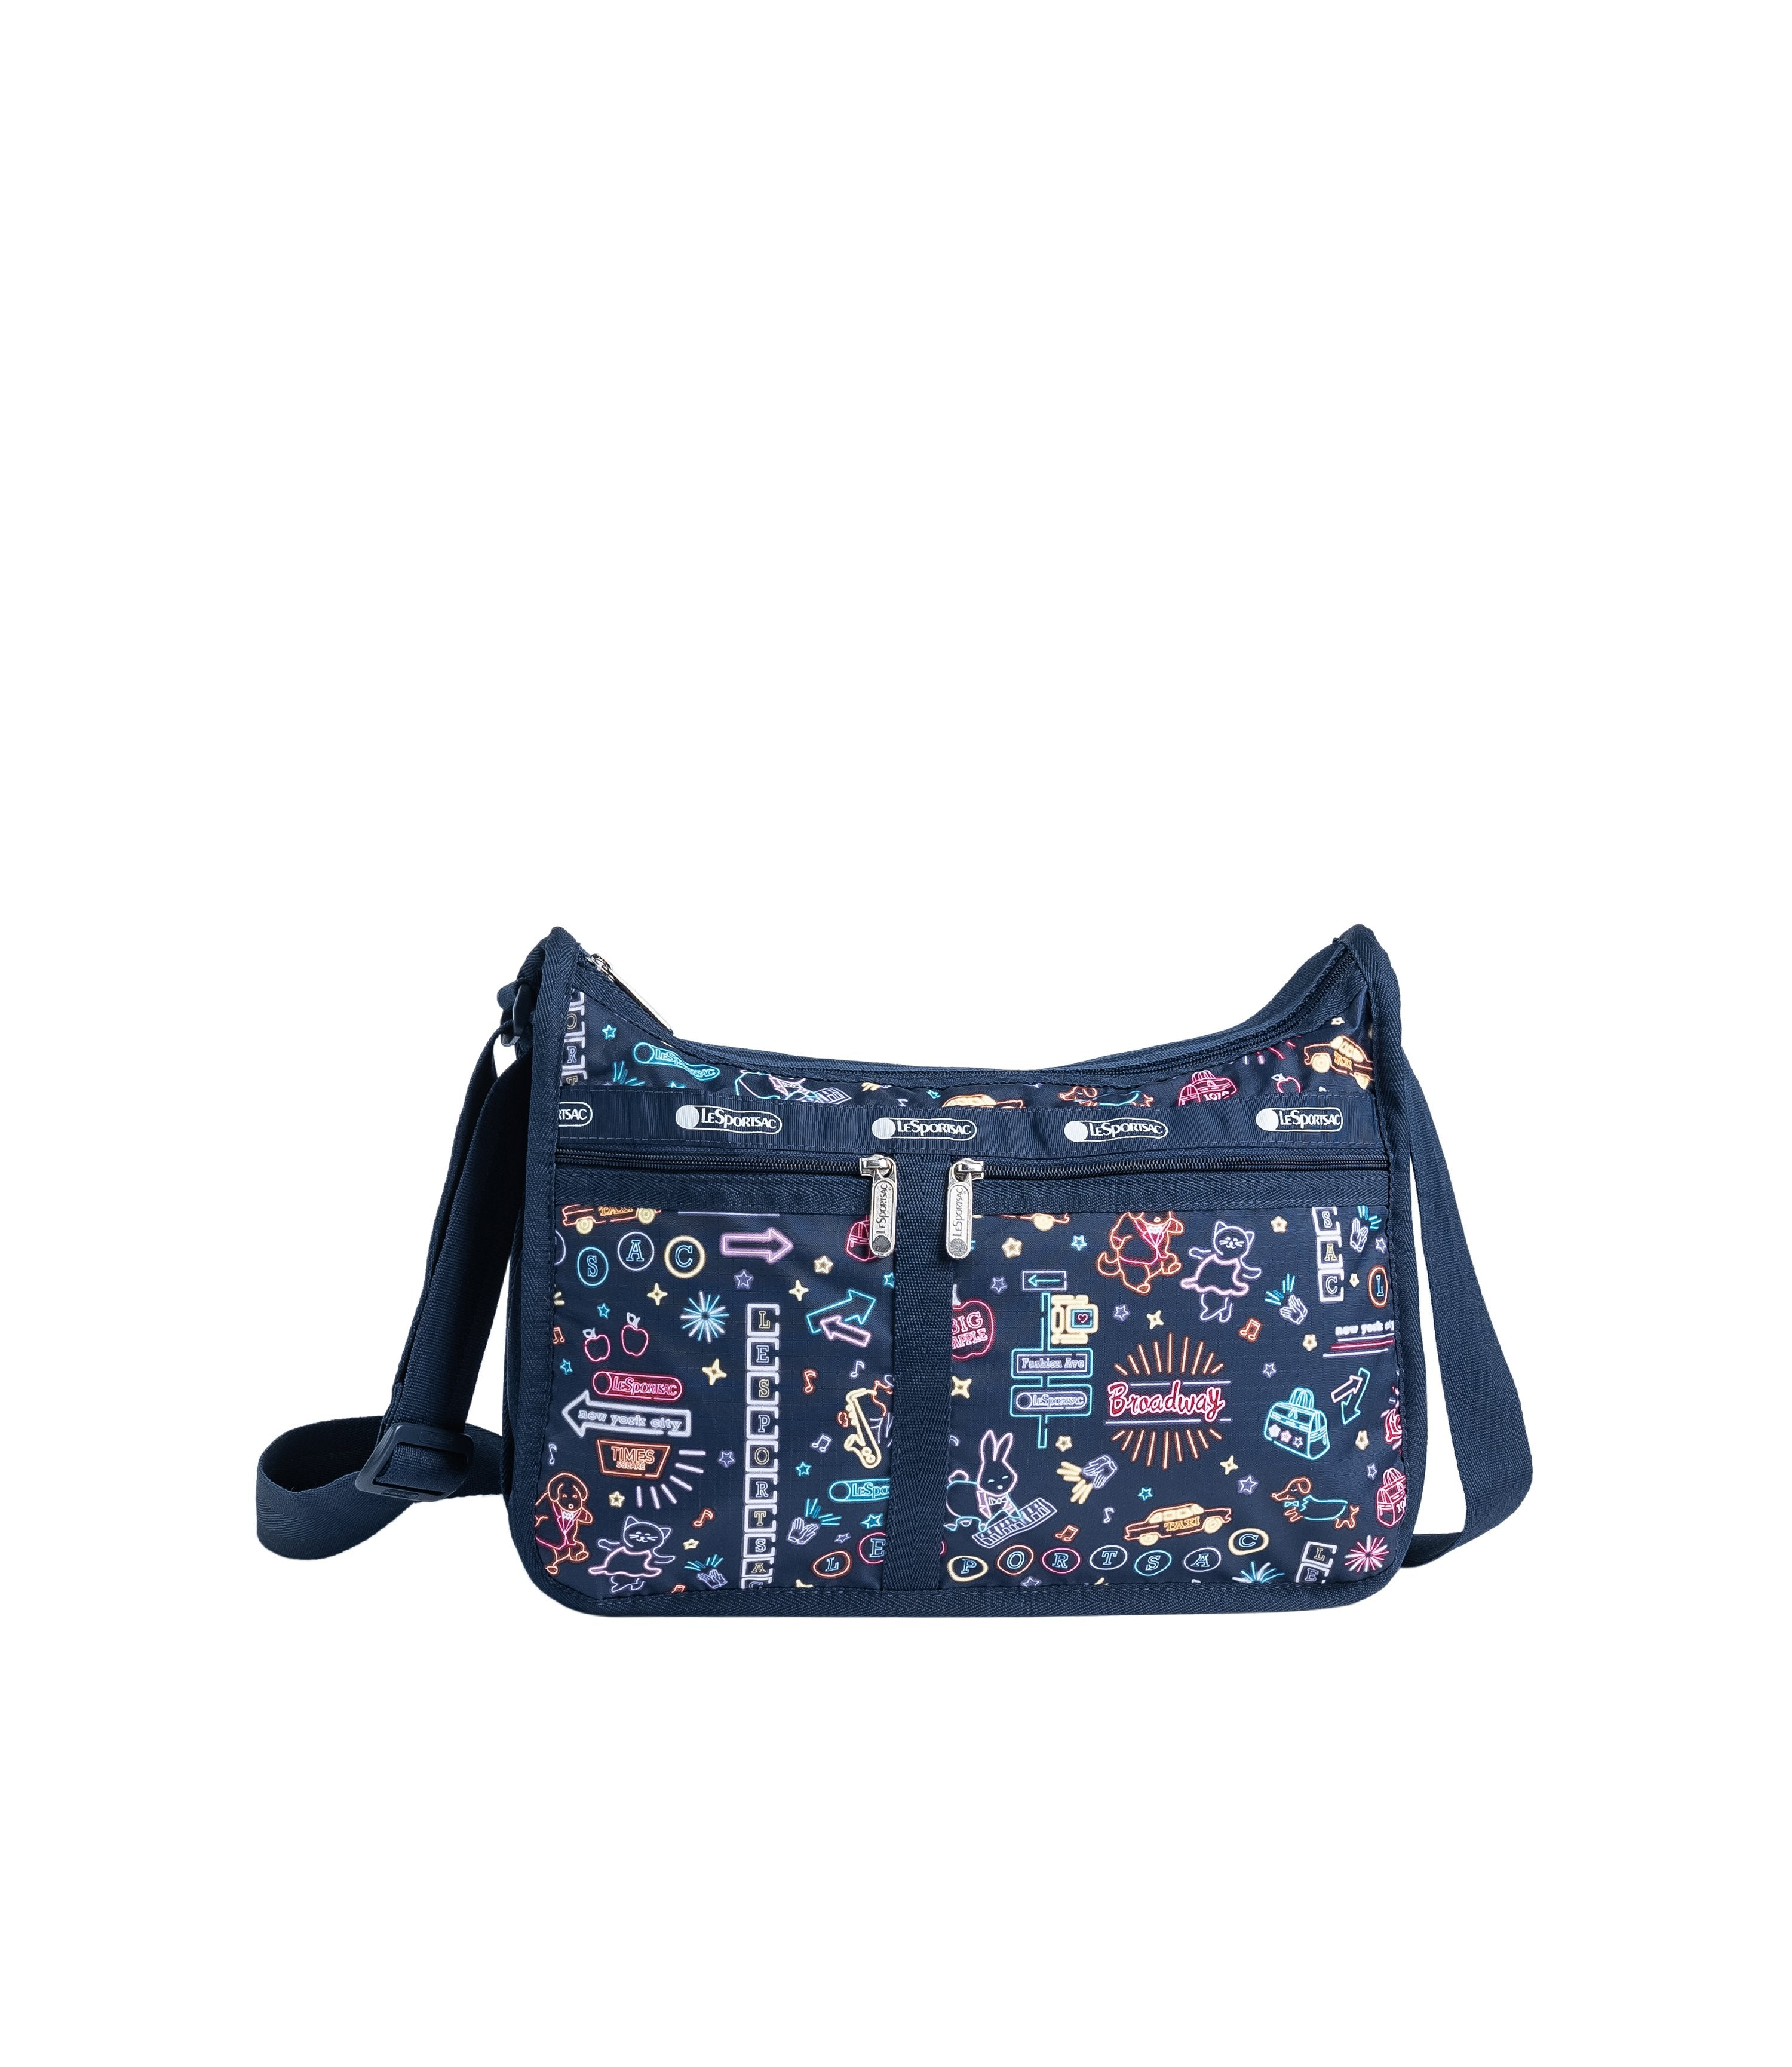 LeSportsac - Handbags - Deluxe Everyday Bag - Neon Nights print